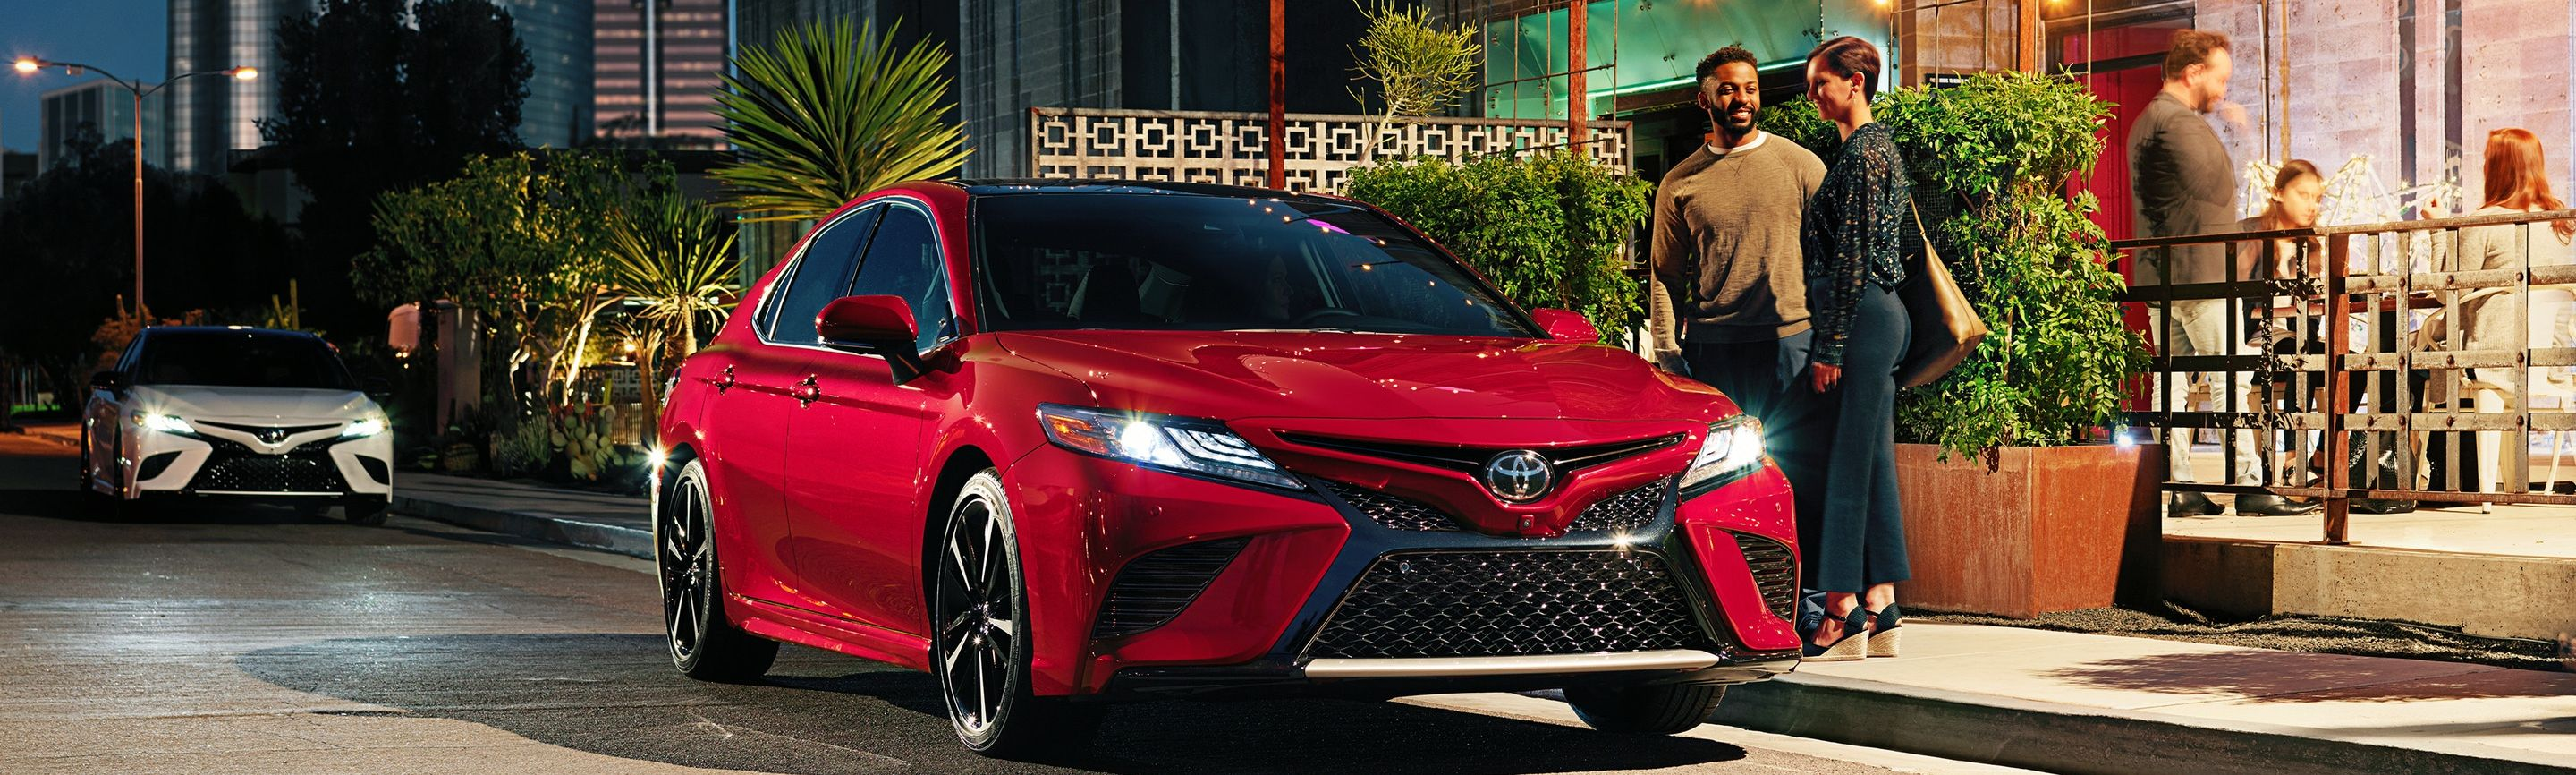 2019 Toyota Camry Leasing near Belvidere, IL